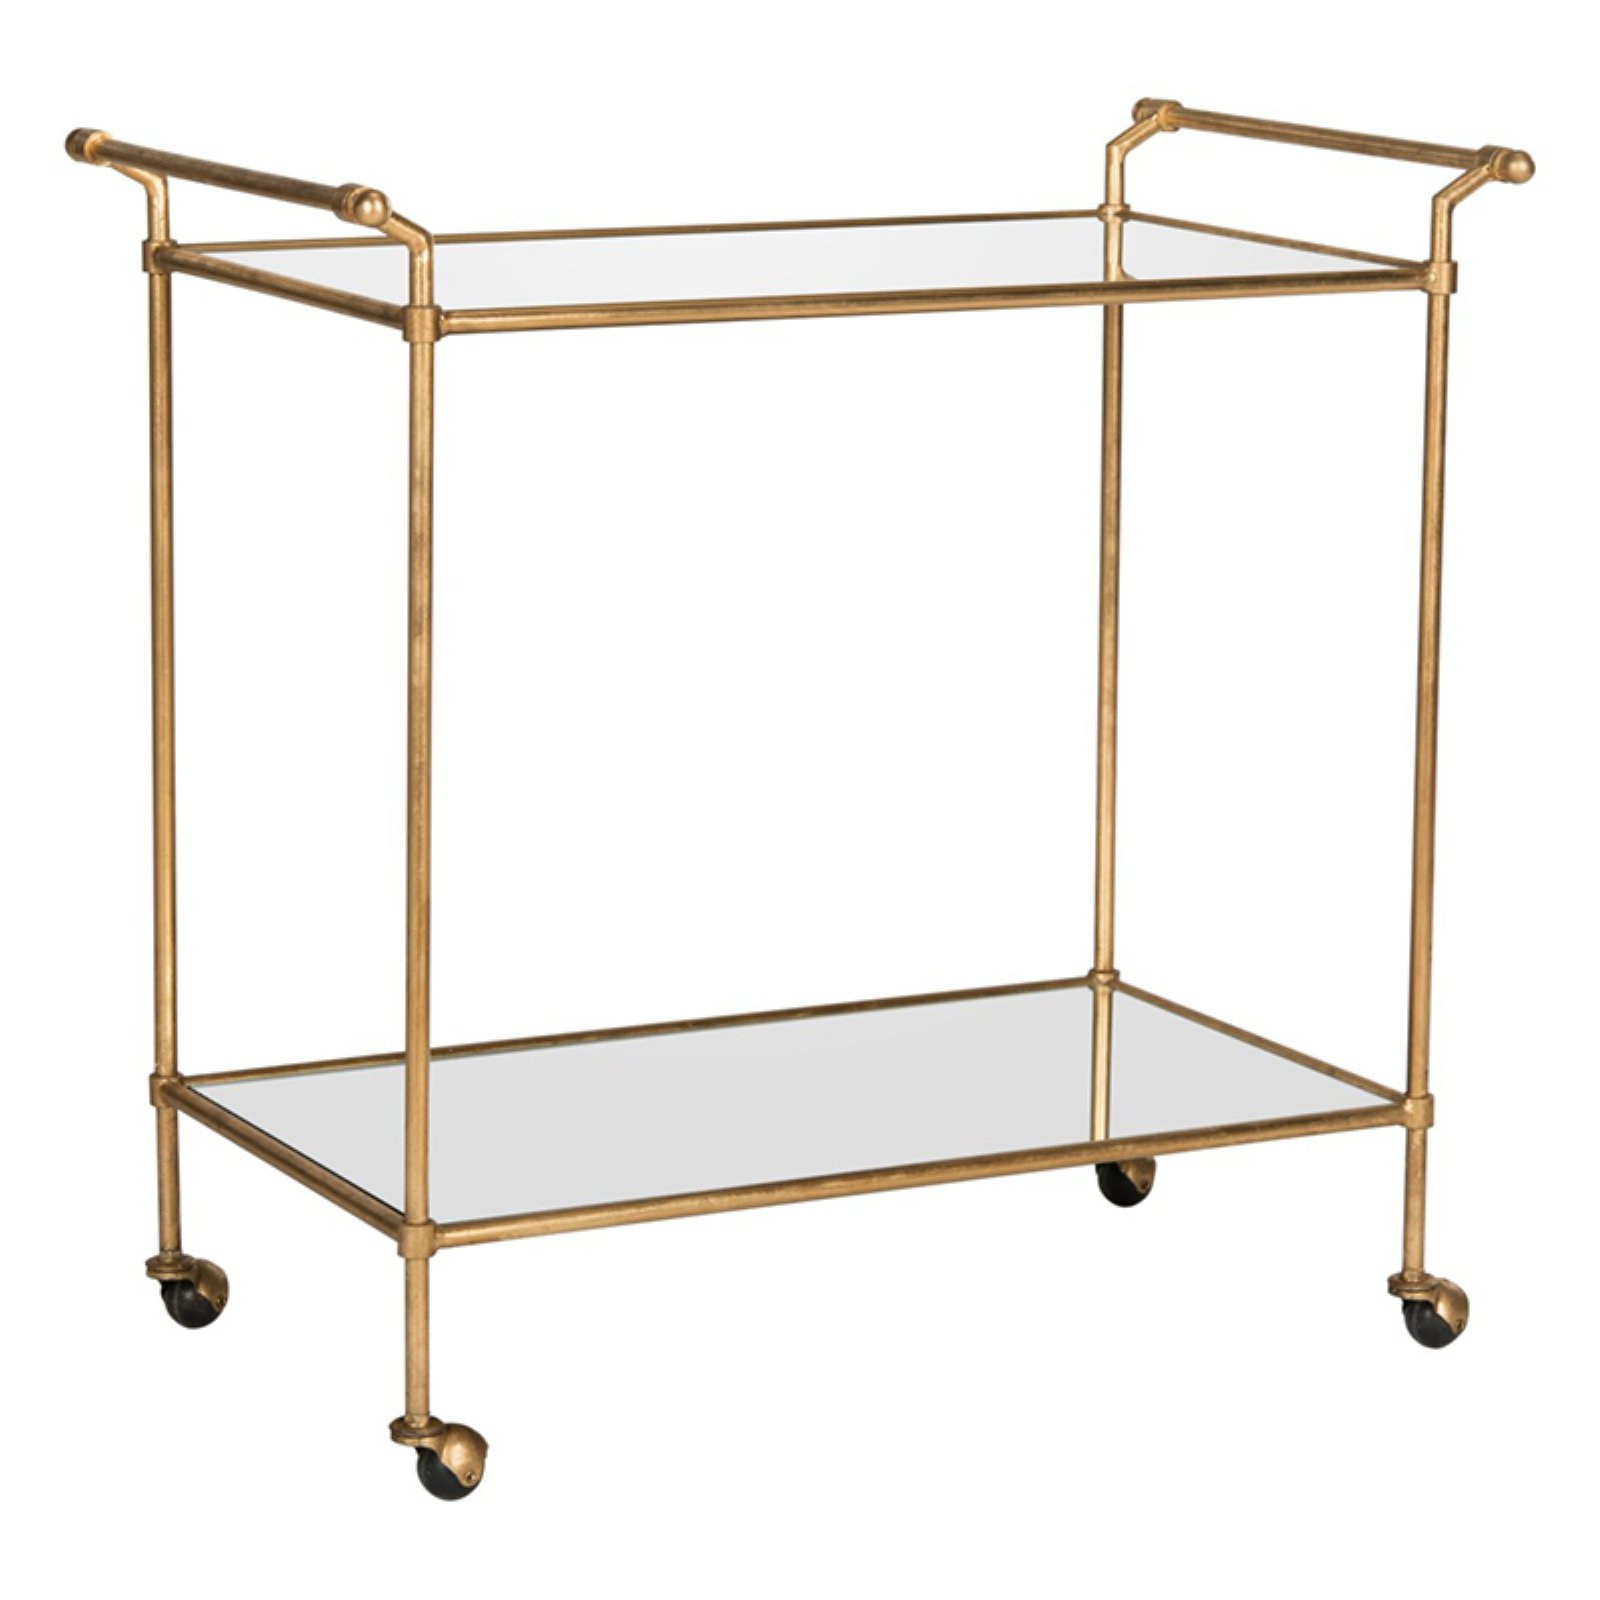 Safavieh Felicity Bar Cart, Gold/Mirror Top